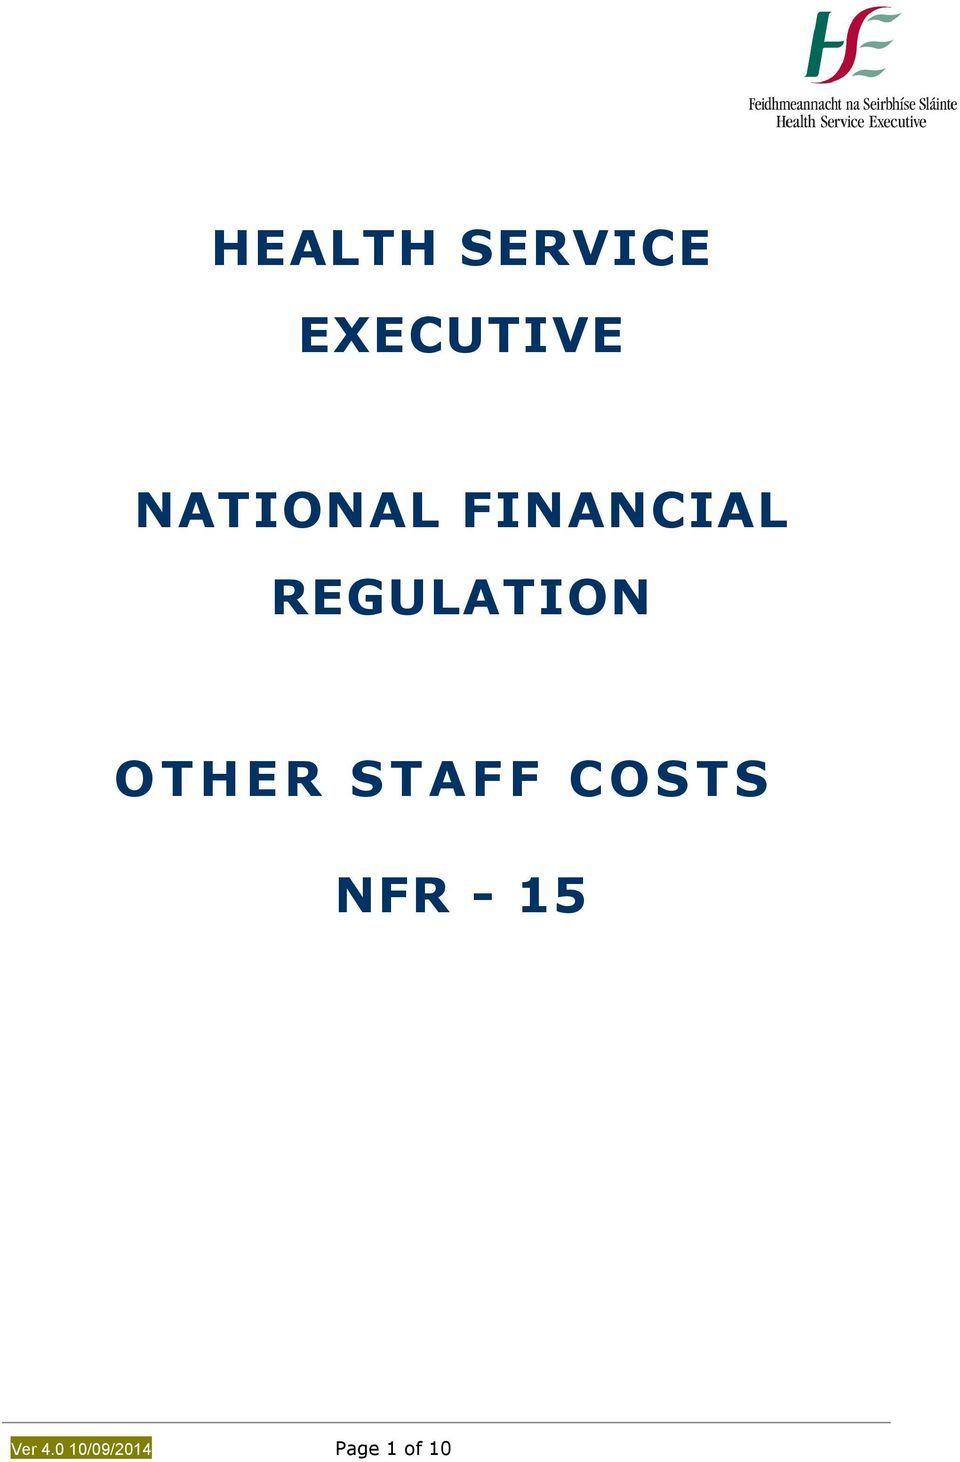 REGULATION OTHER STAFF COSTS